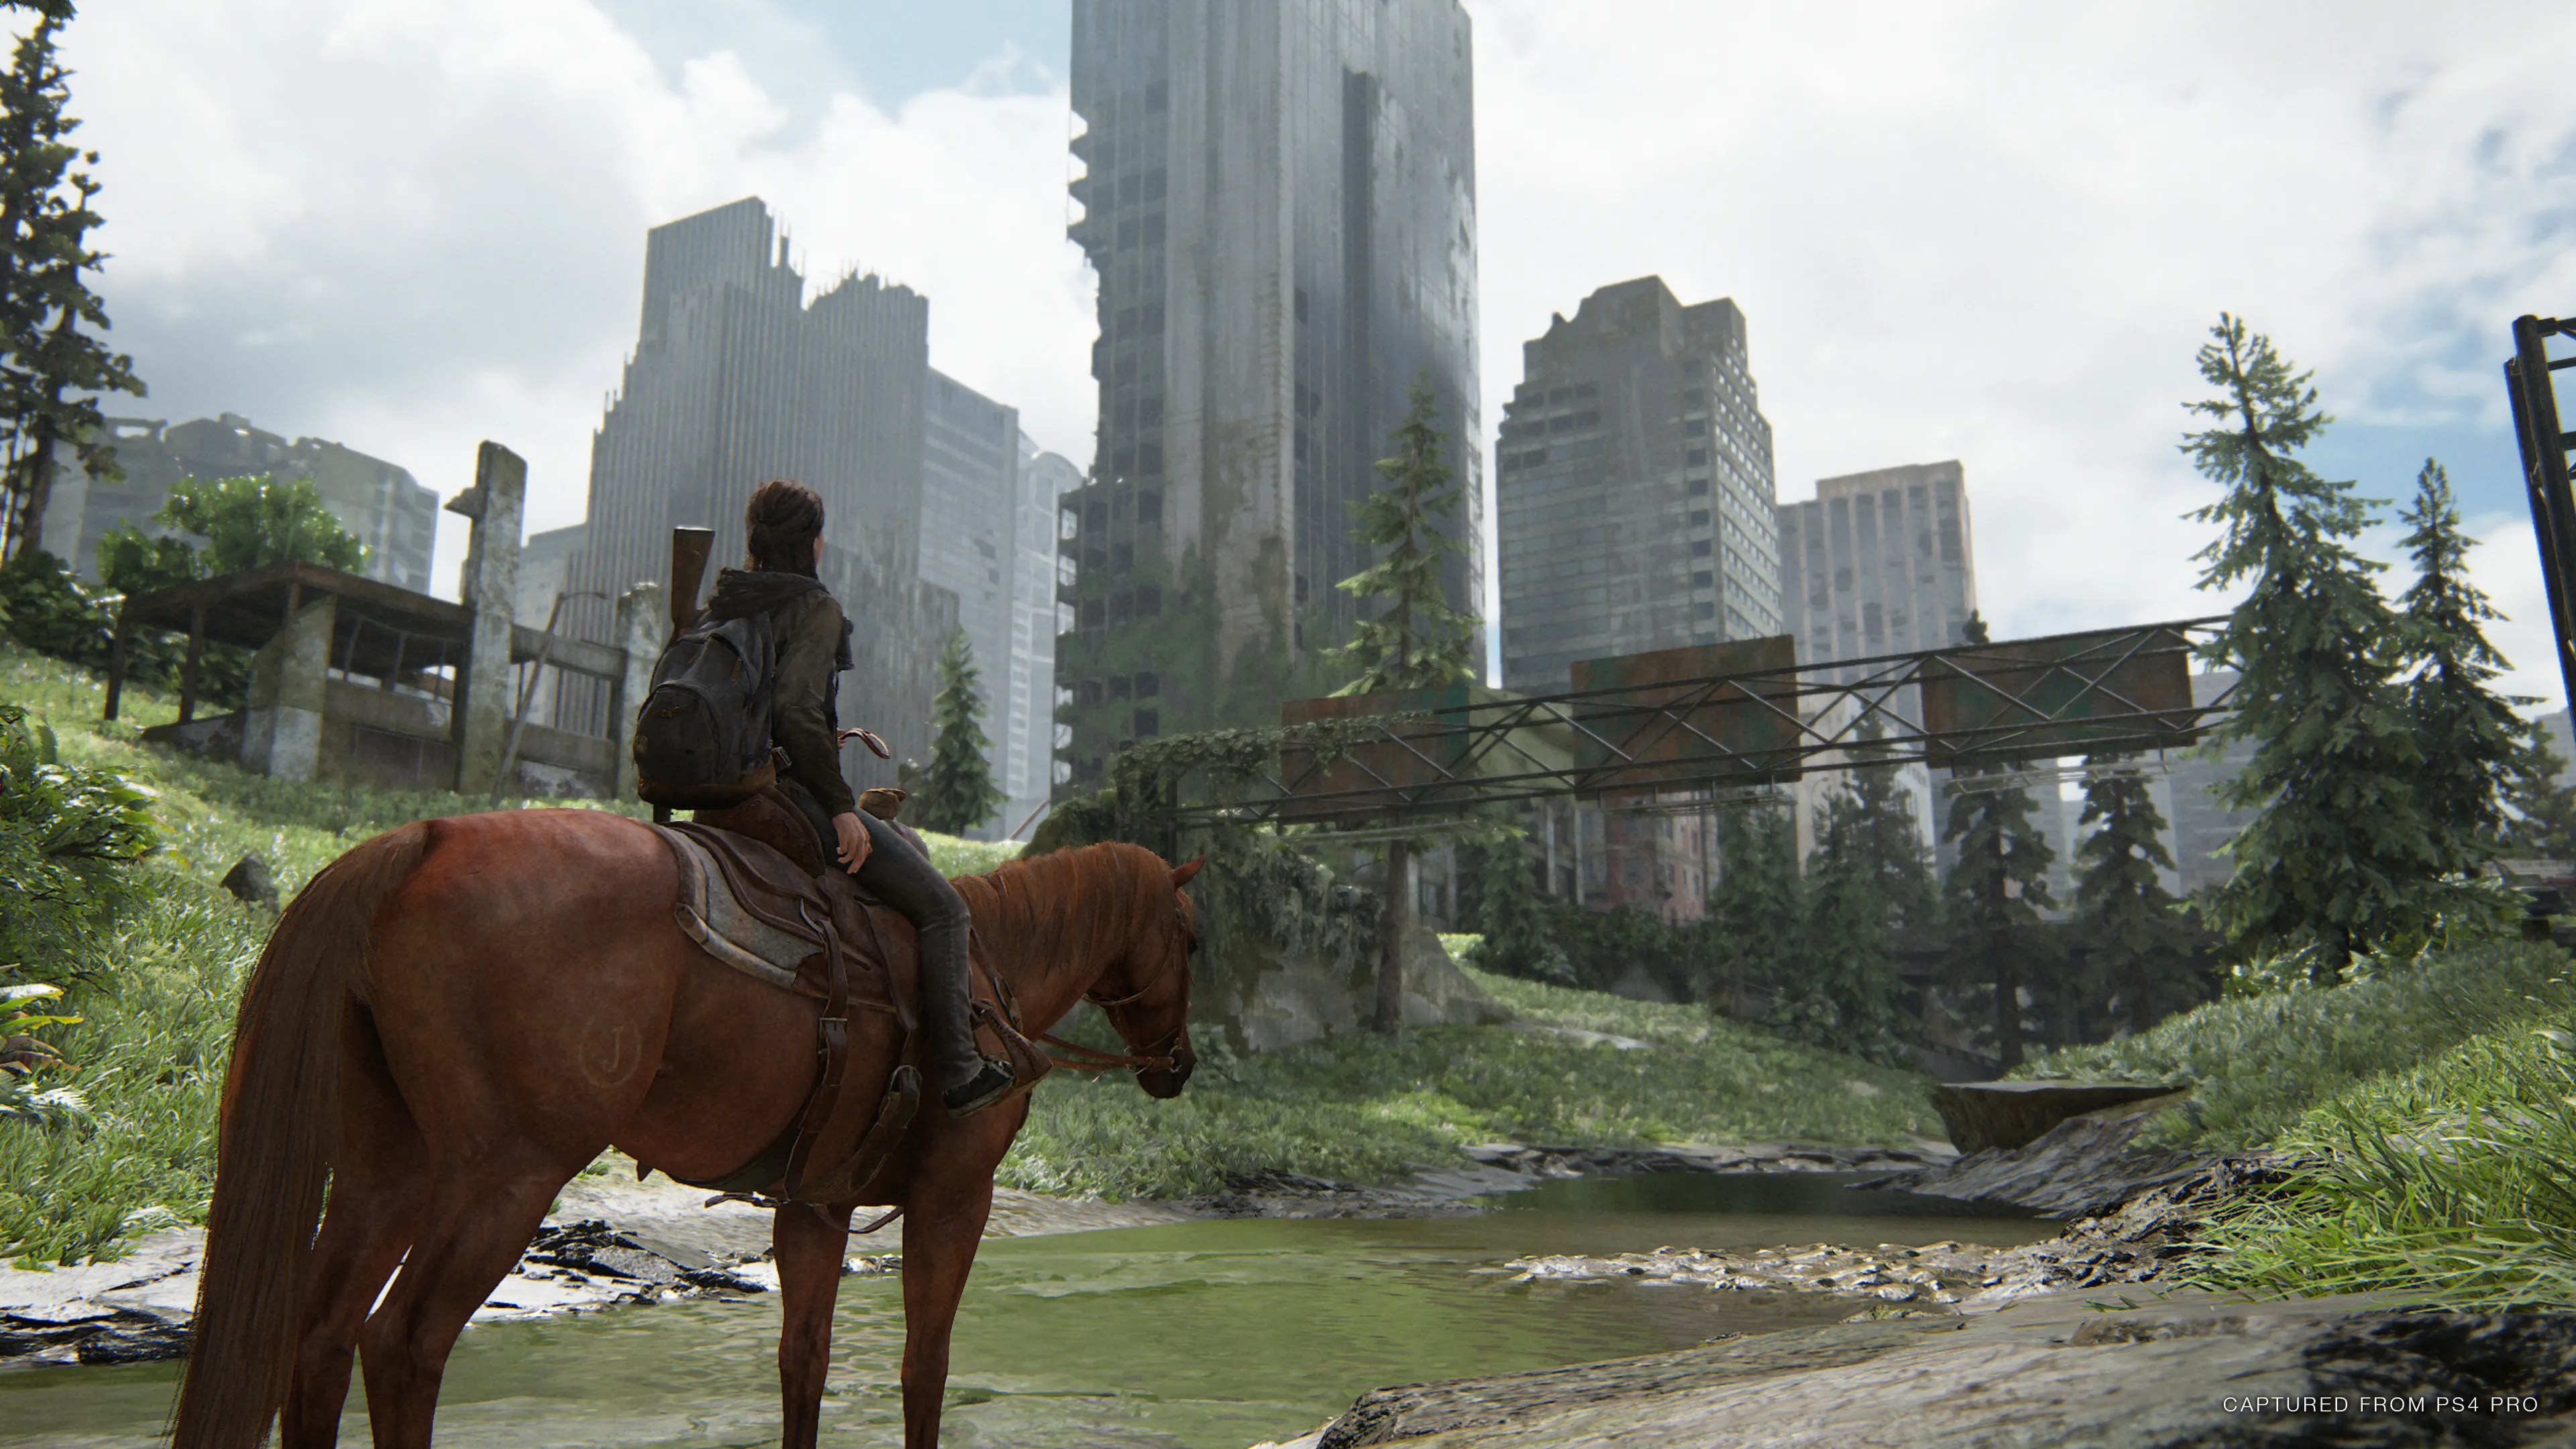 Most of 'The Last of Us Part II' takes place in a decimated version of Seattle.